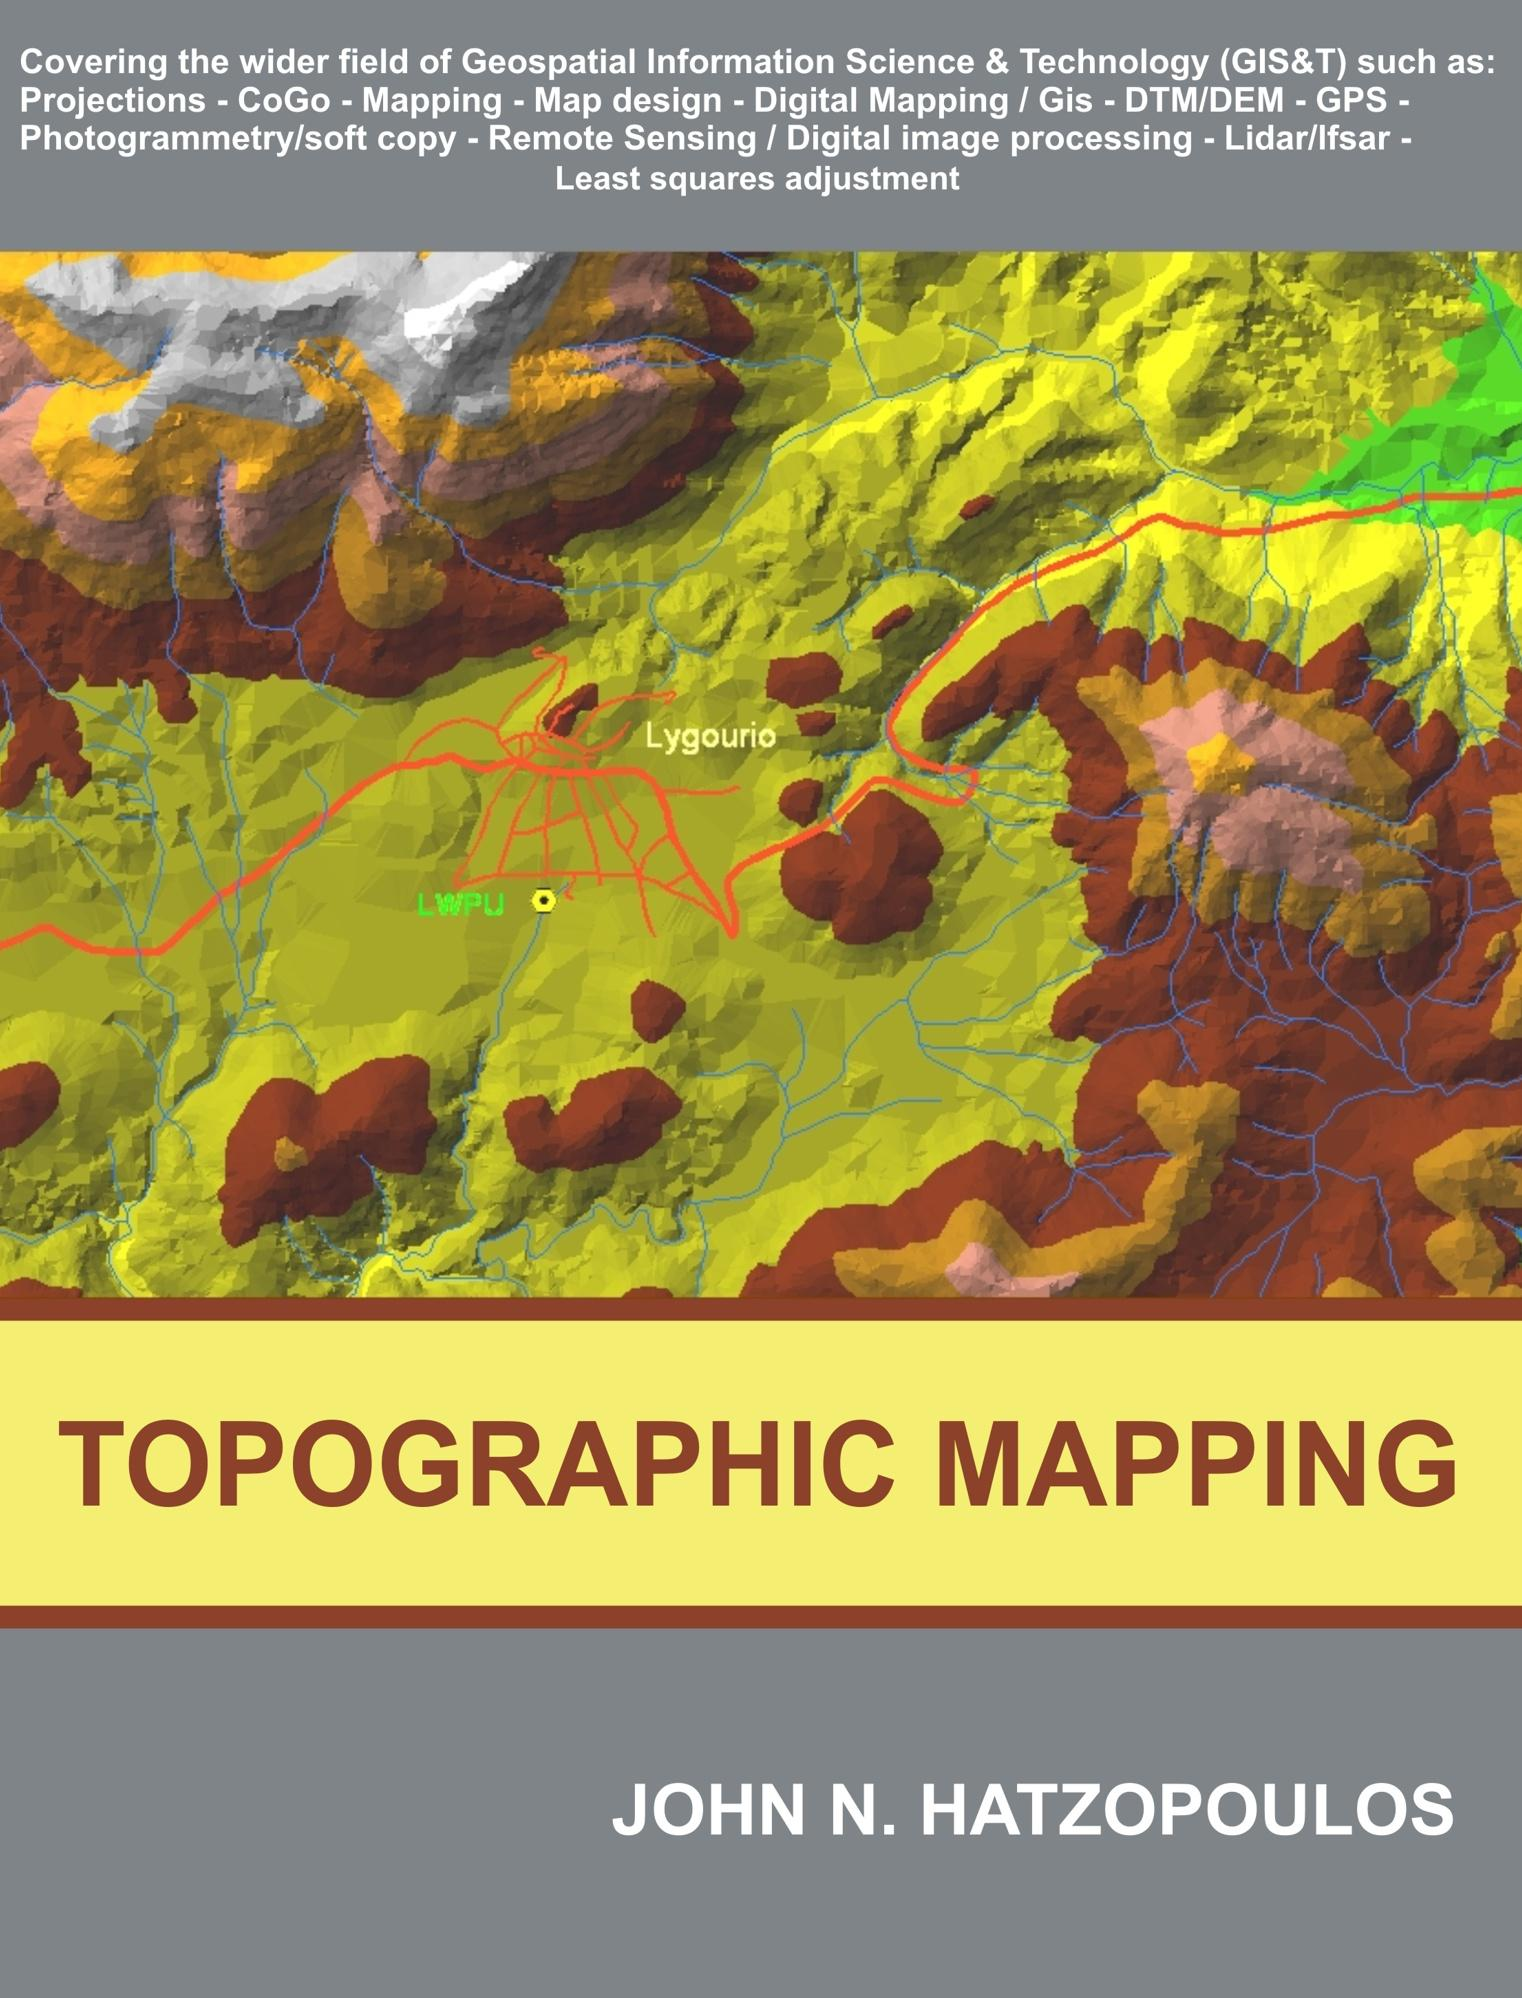 Topographic Mapping: Covering the Wider Field of Geospatial Information & Technology (GI&T) EB9781599429779